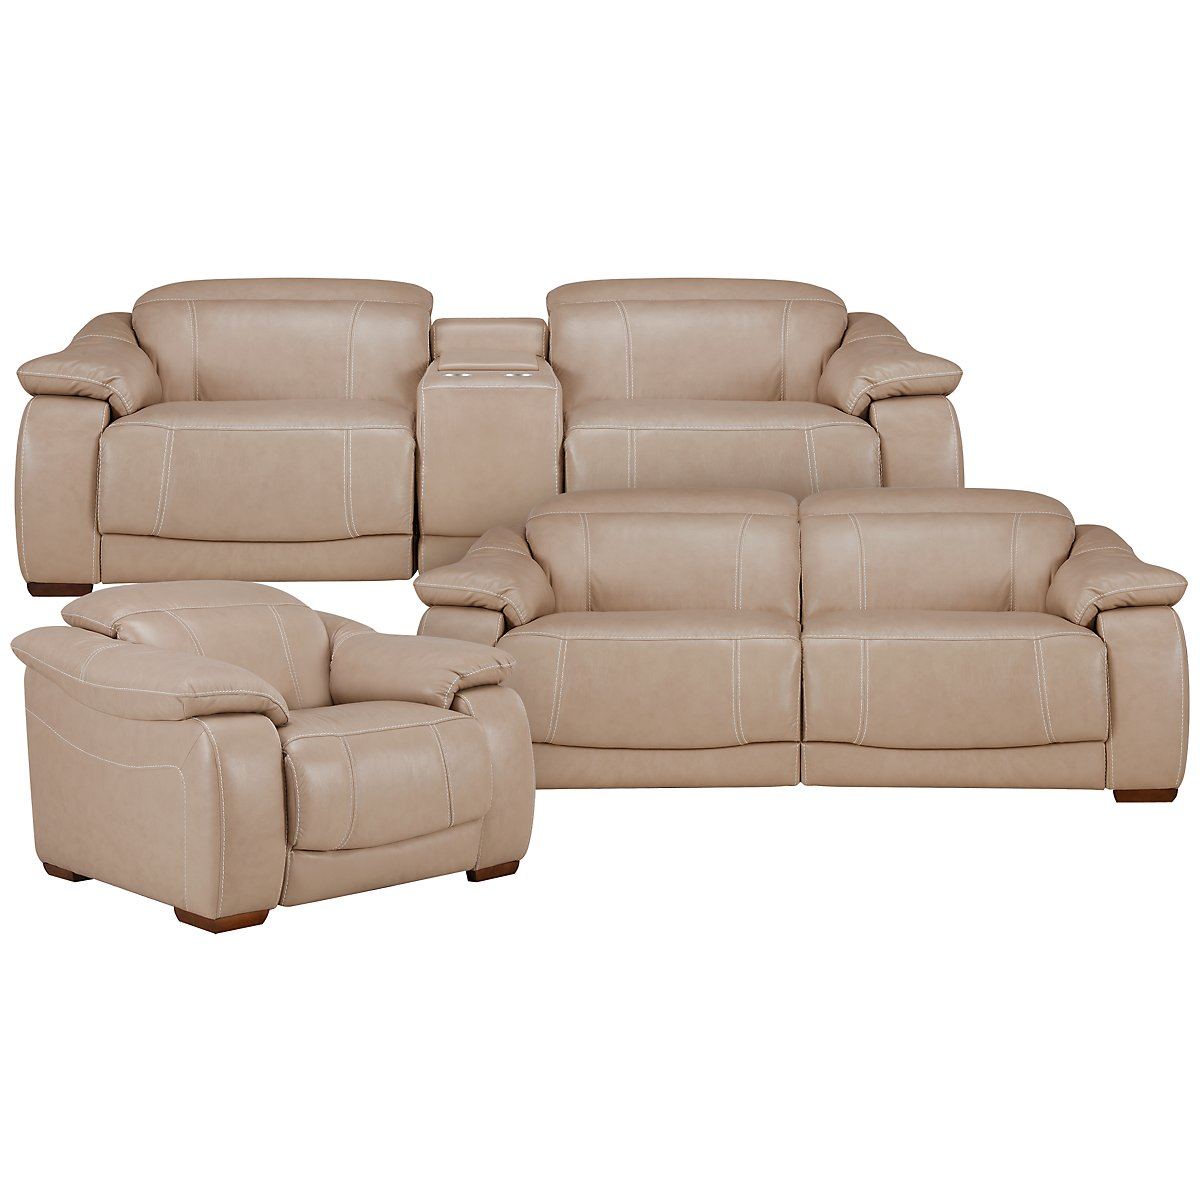 Orion Lt Taupe Leather & Bonded Leather Power Reclining Living Room